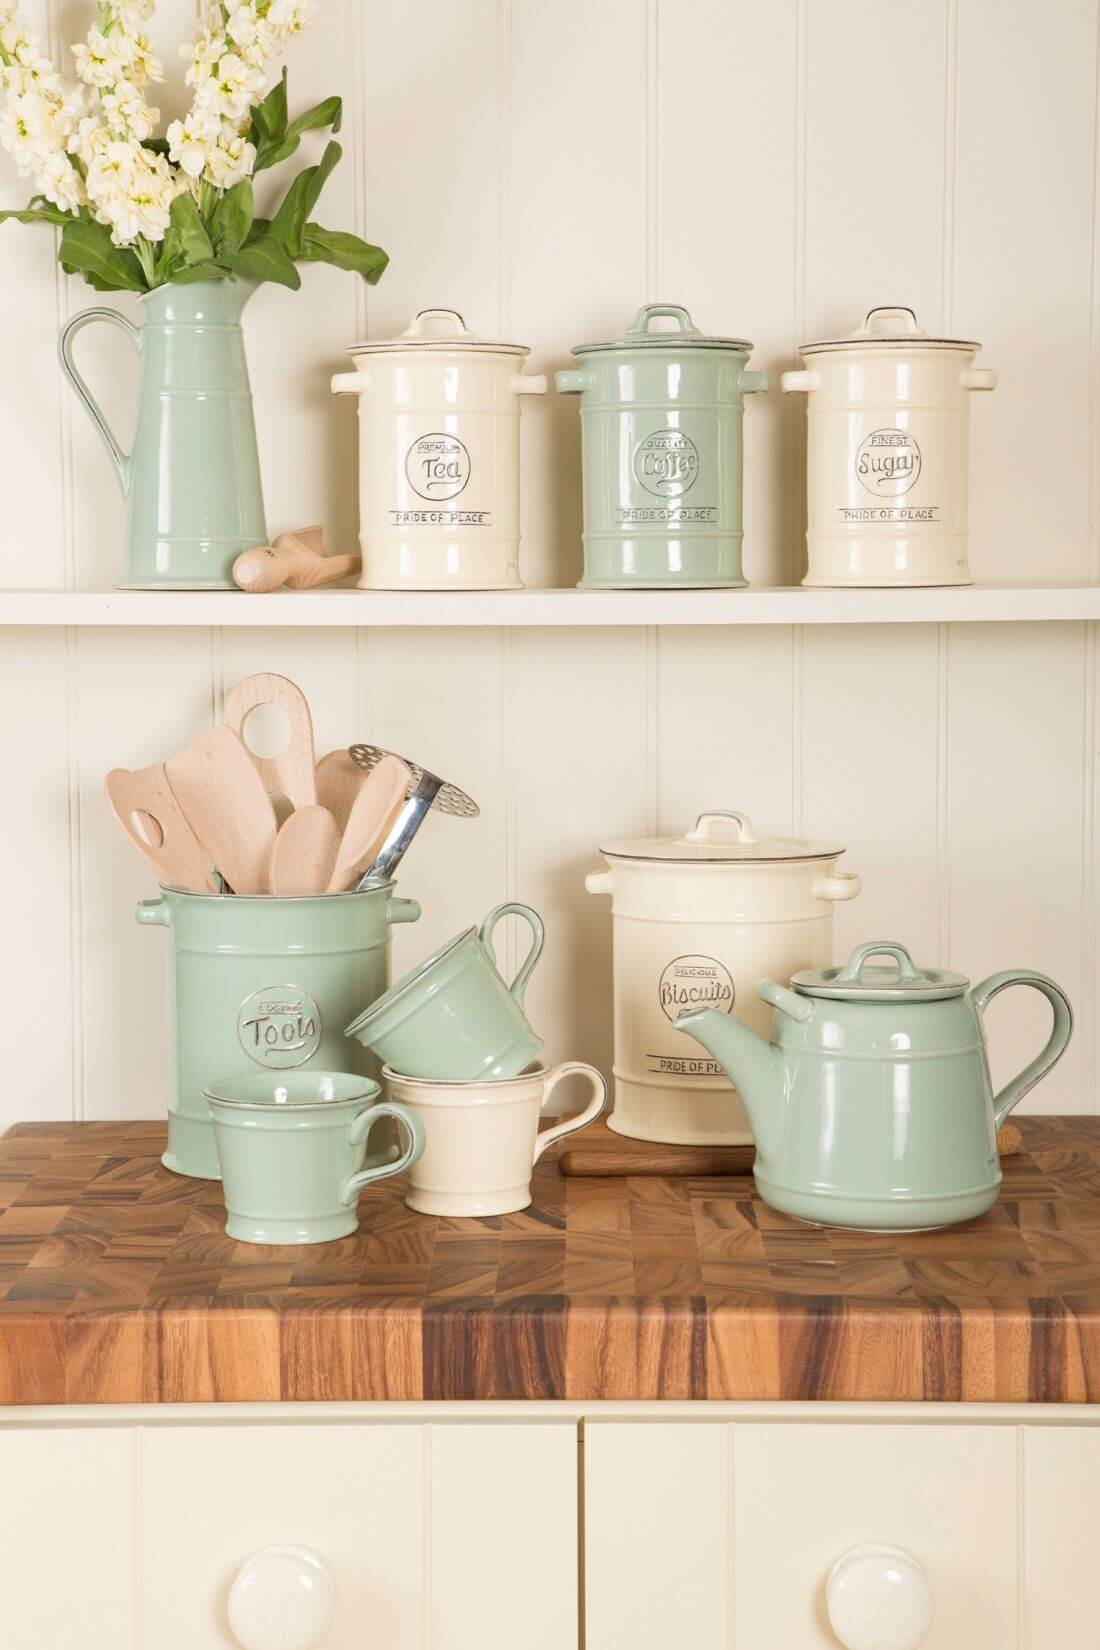 Rustic Pastel Canisters and Teapot